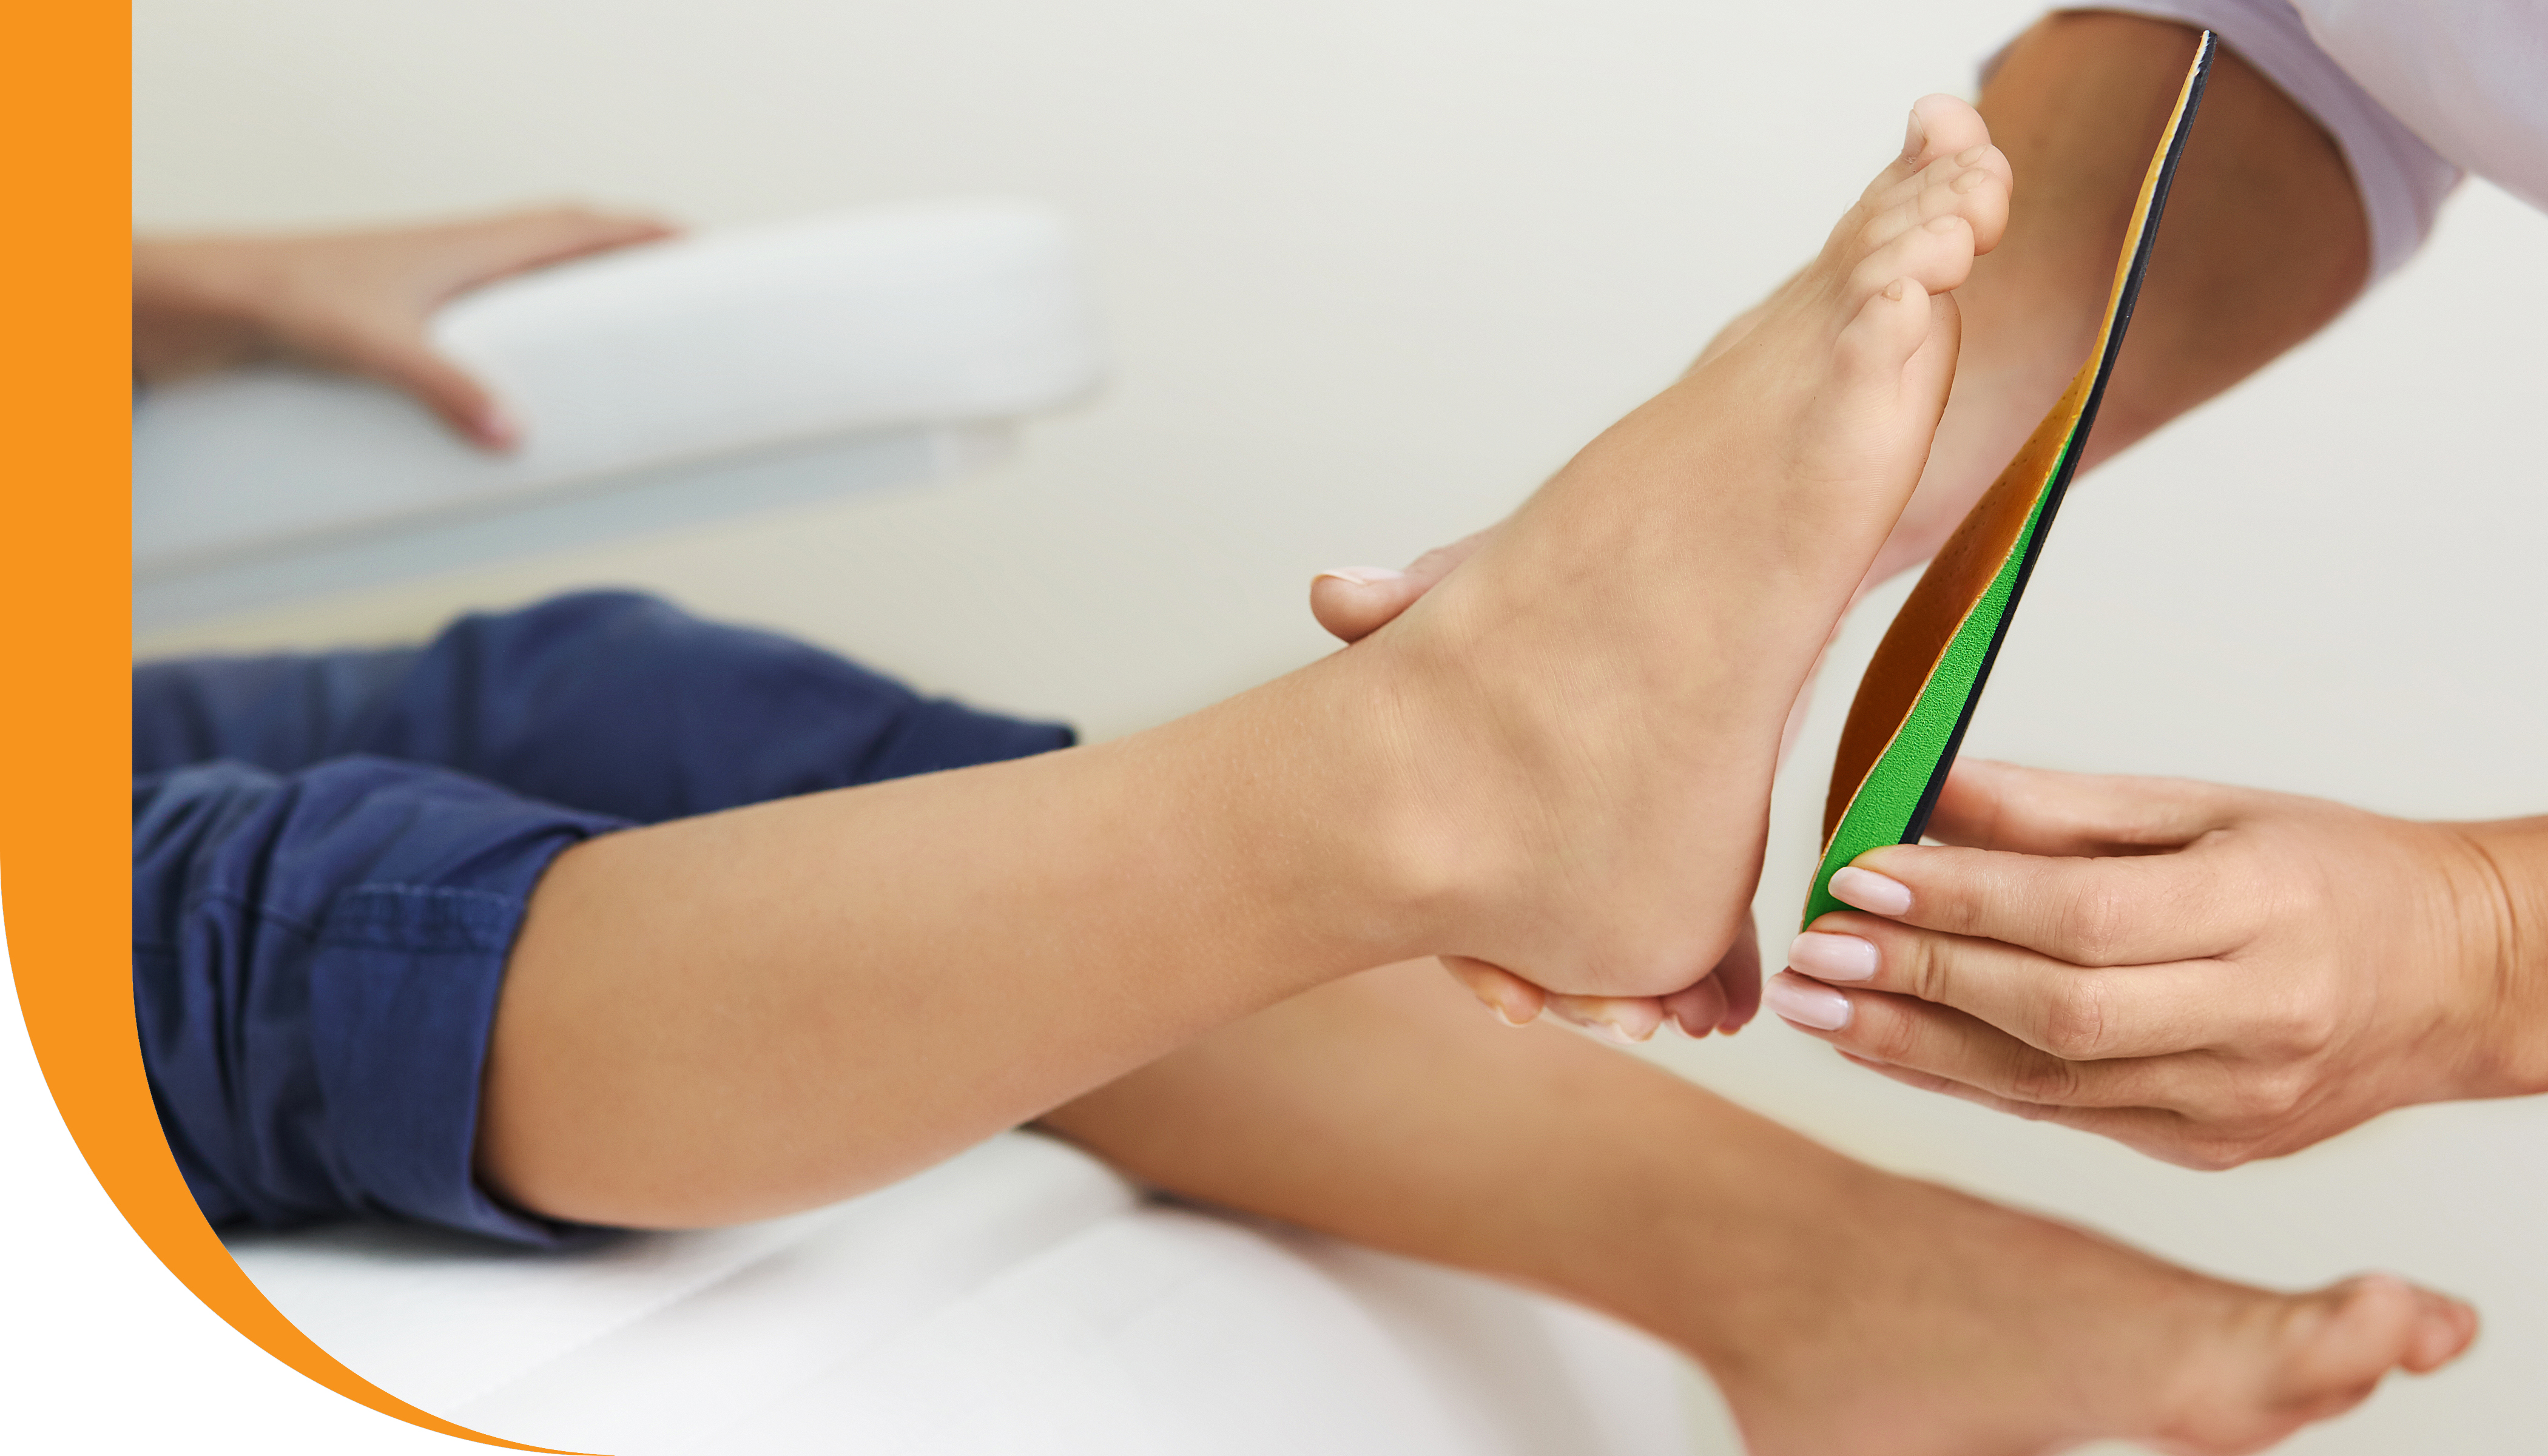 A patient being fitted for custom orthotics.